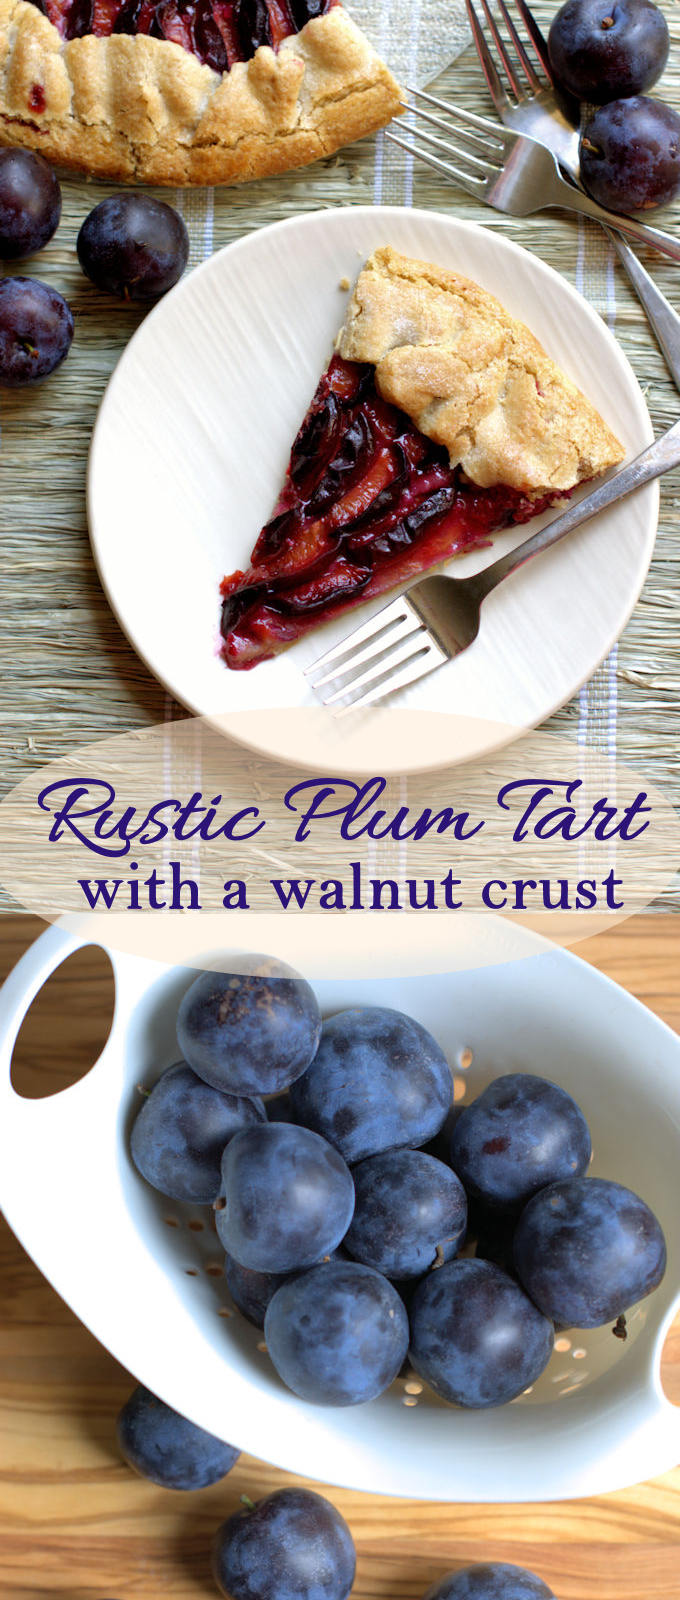 Perfectly simple and perfectly tasty rustic tart made with fresh plums. Easy and fast dessert recipe.